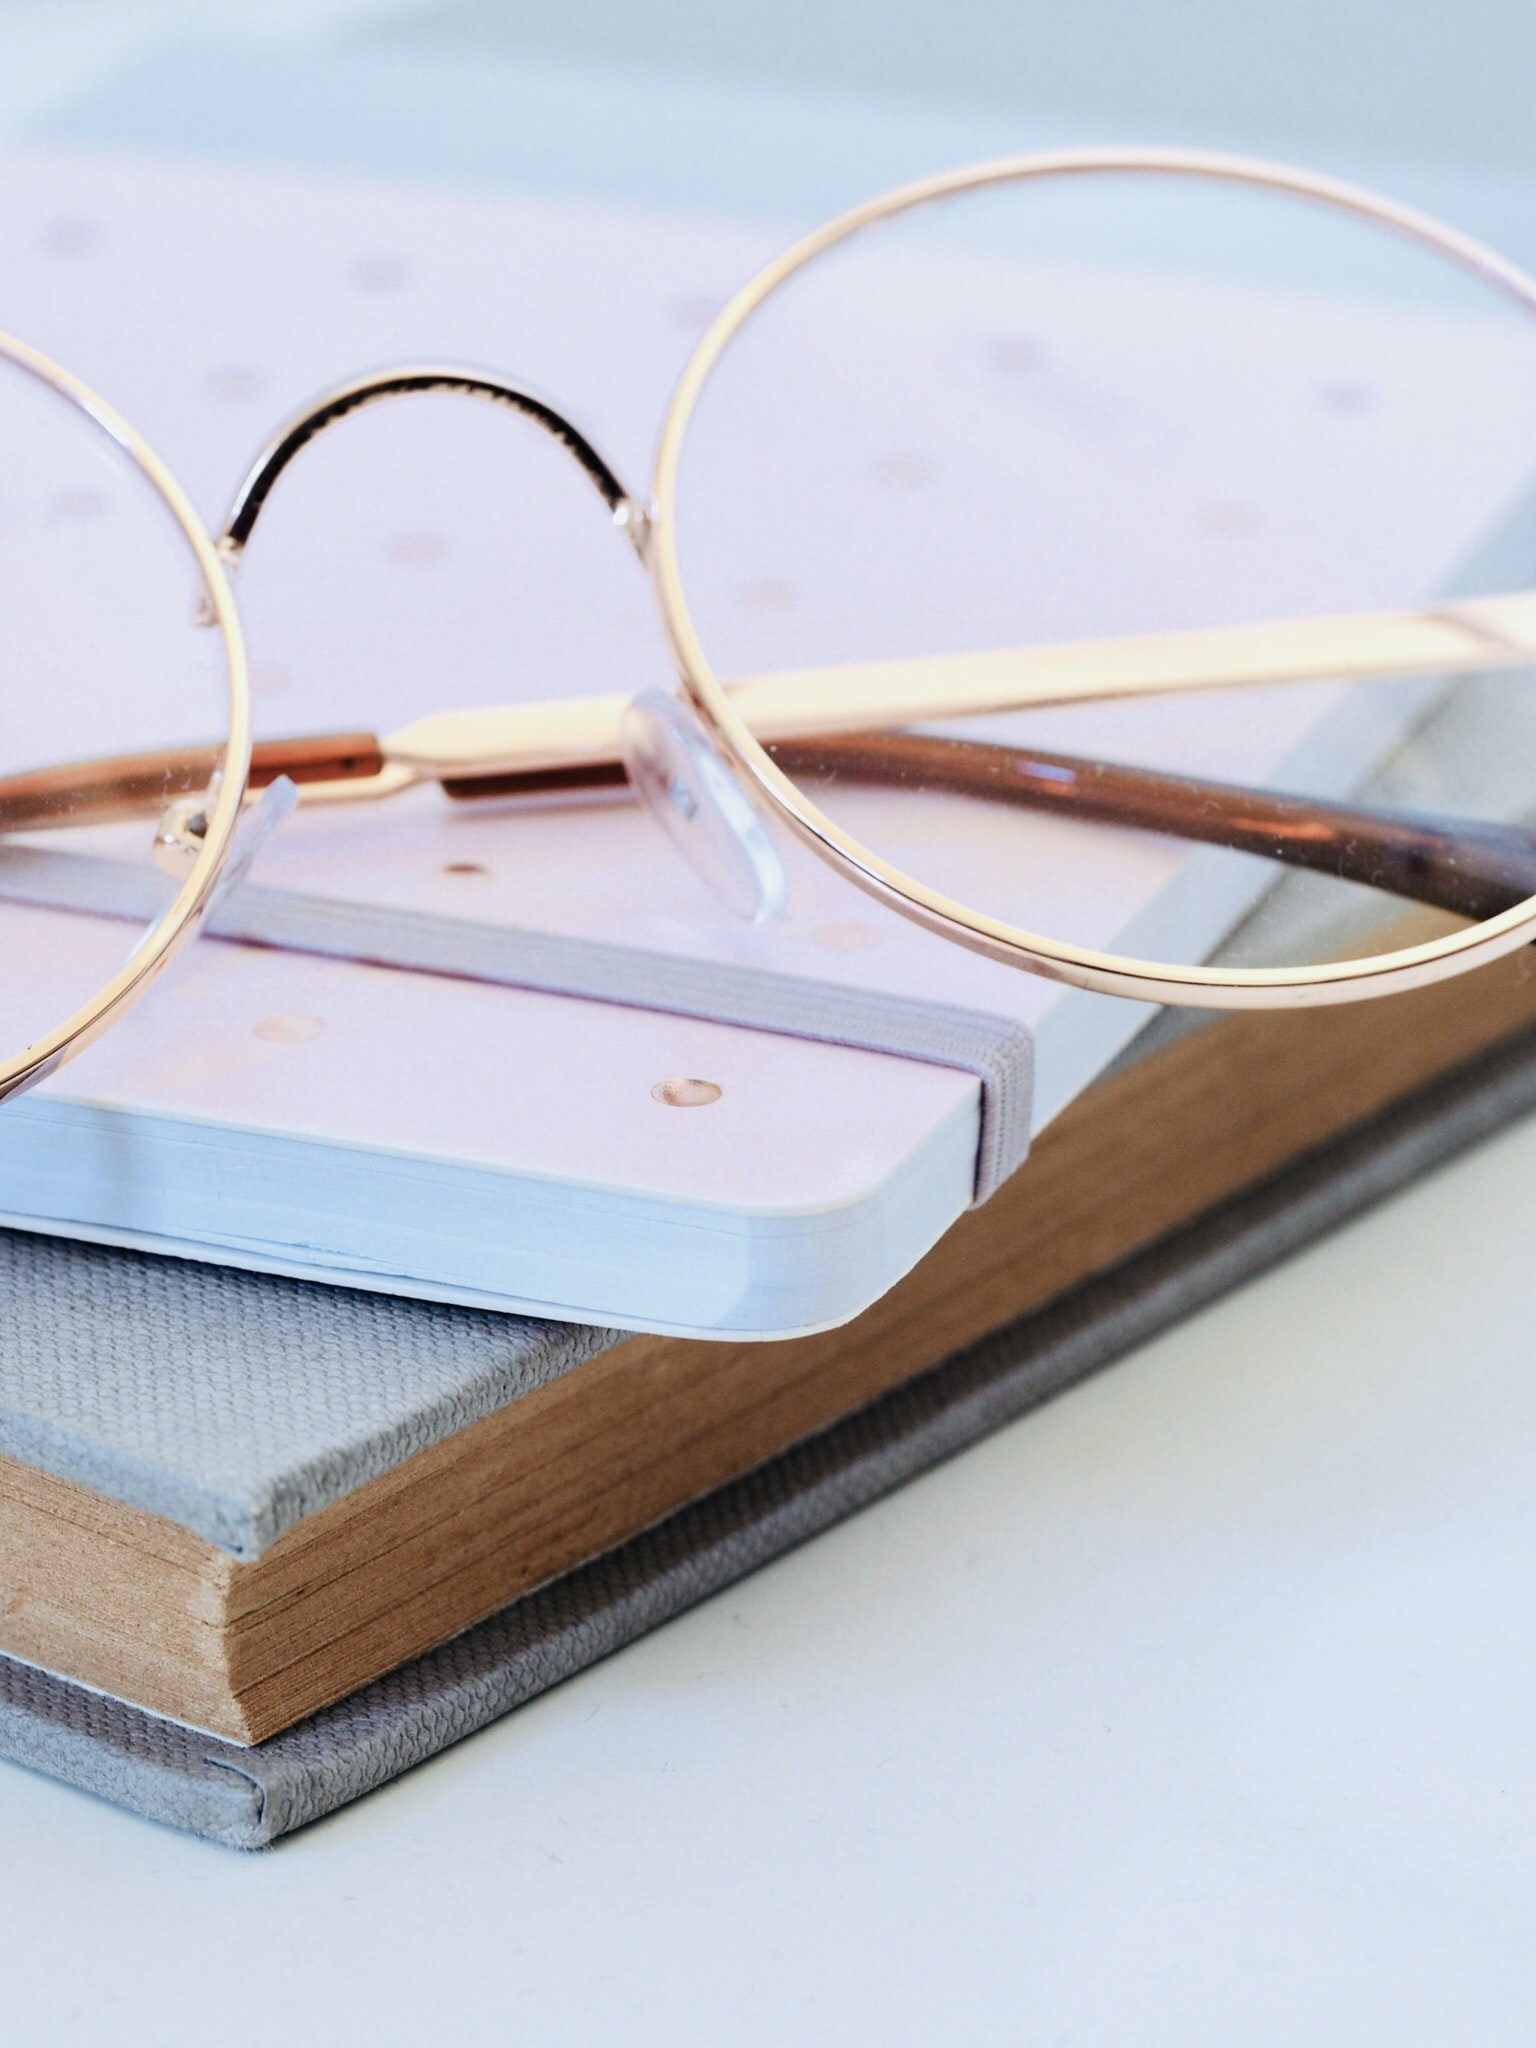 eyeglasses on book